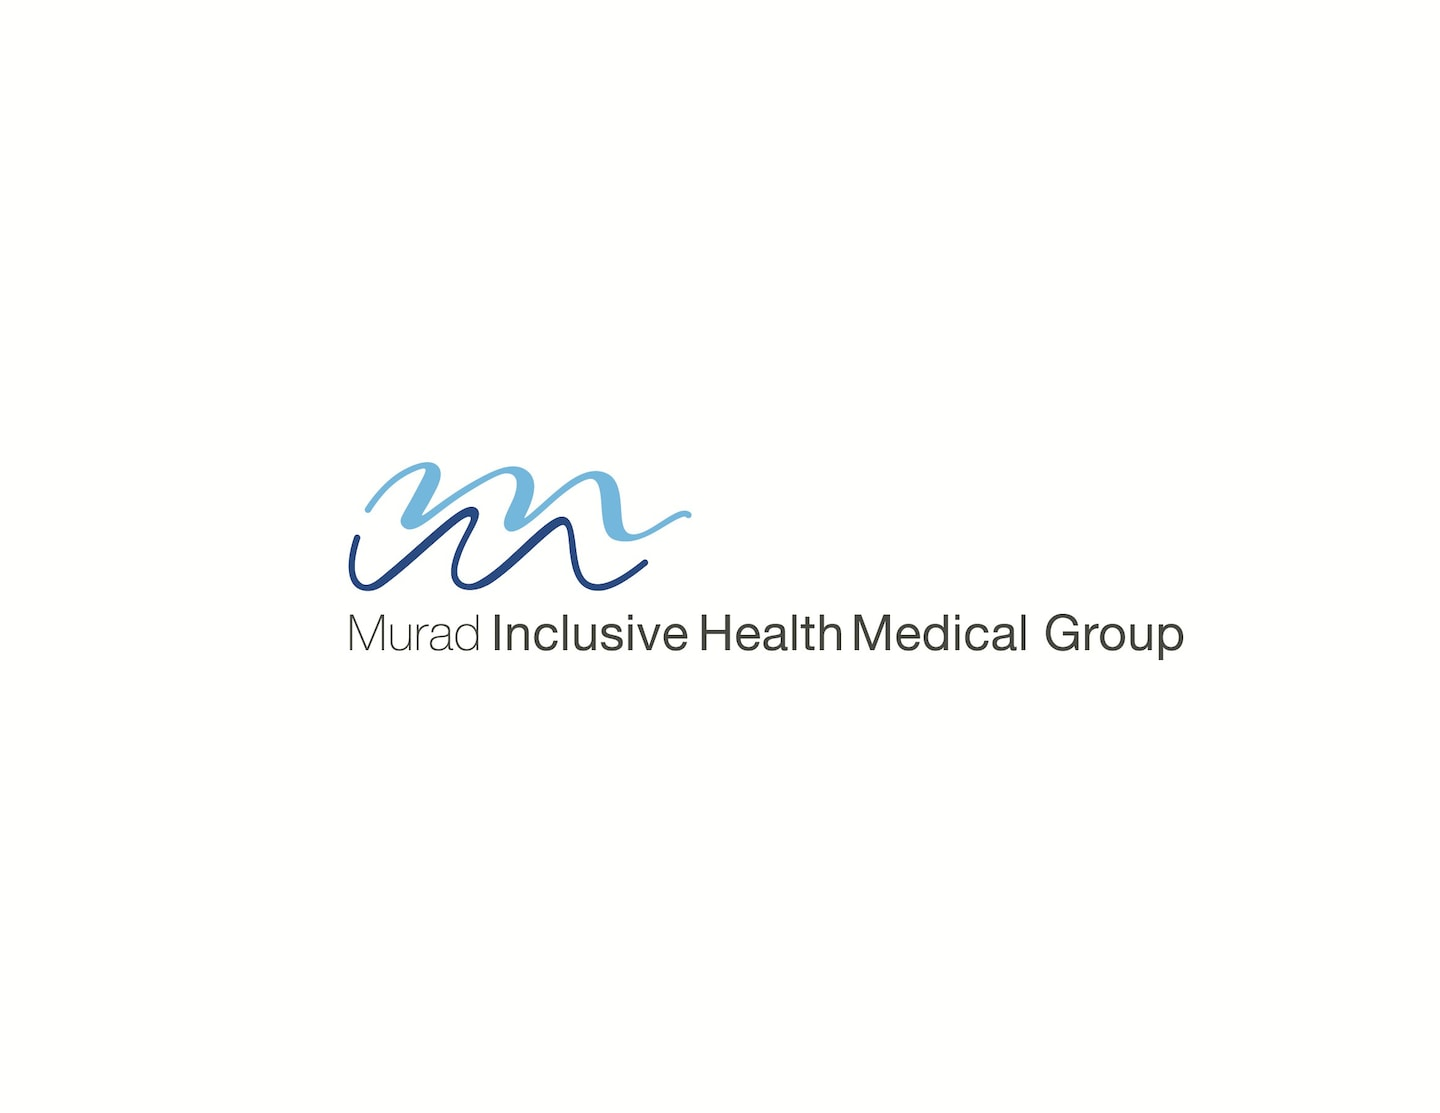 Murad Inclusive Health Medical Group